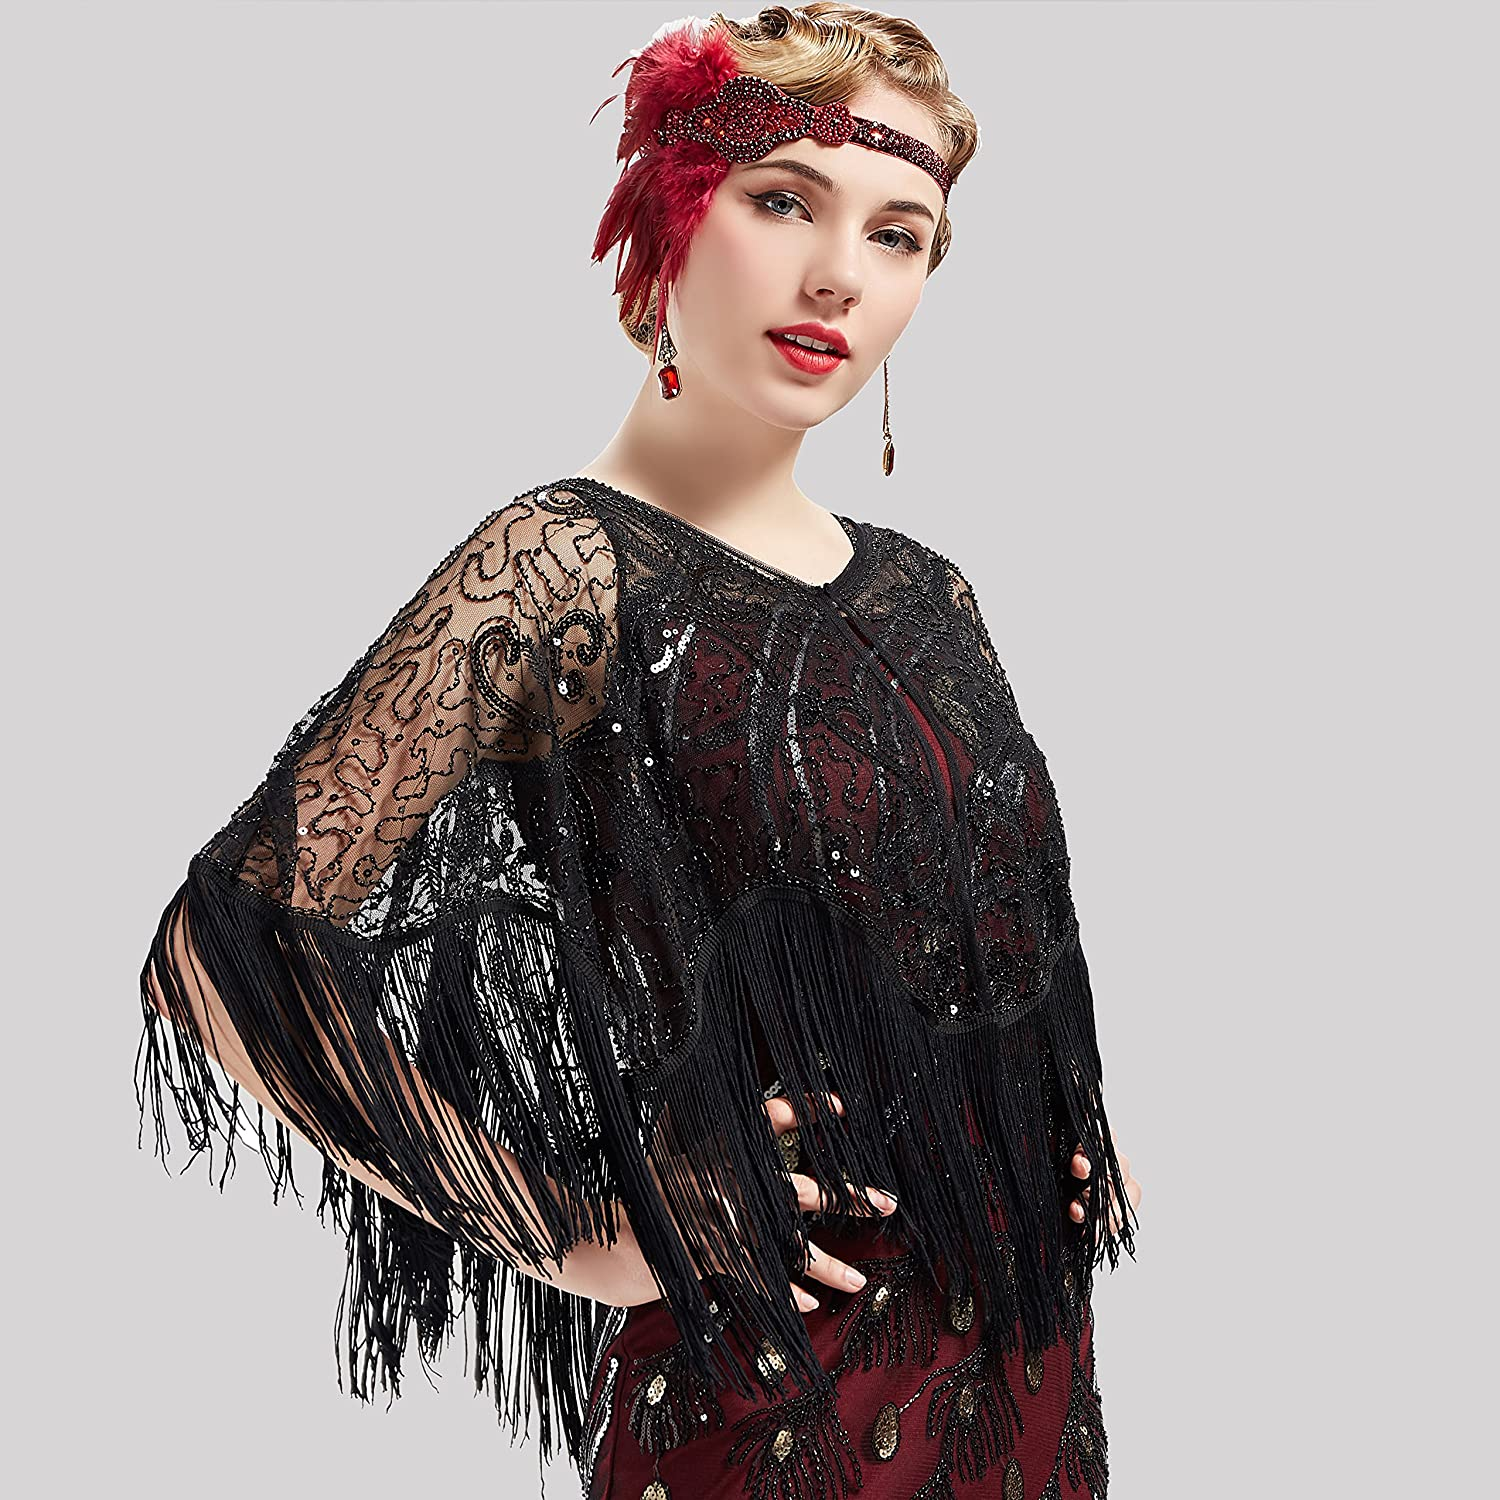 1920s Shawls, Scarves and Evening Jacket Tips BABEYOND 1920s Shawl Wraps Gatsby Beaded Evening Cape Bridal Shawl for Evening Dresses Wedding Party $23.99 AT vintagedancer.com